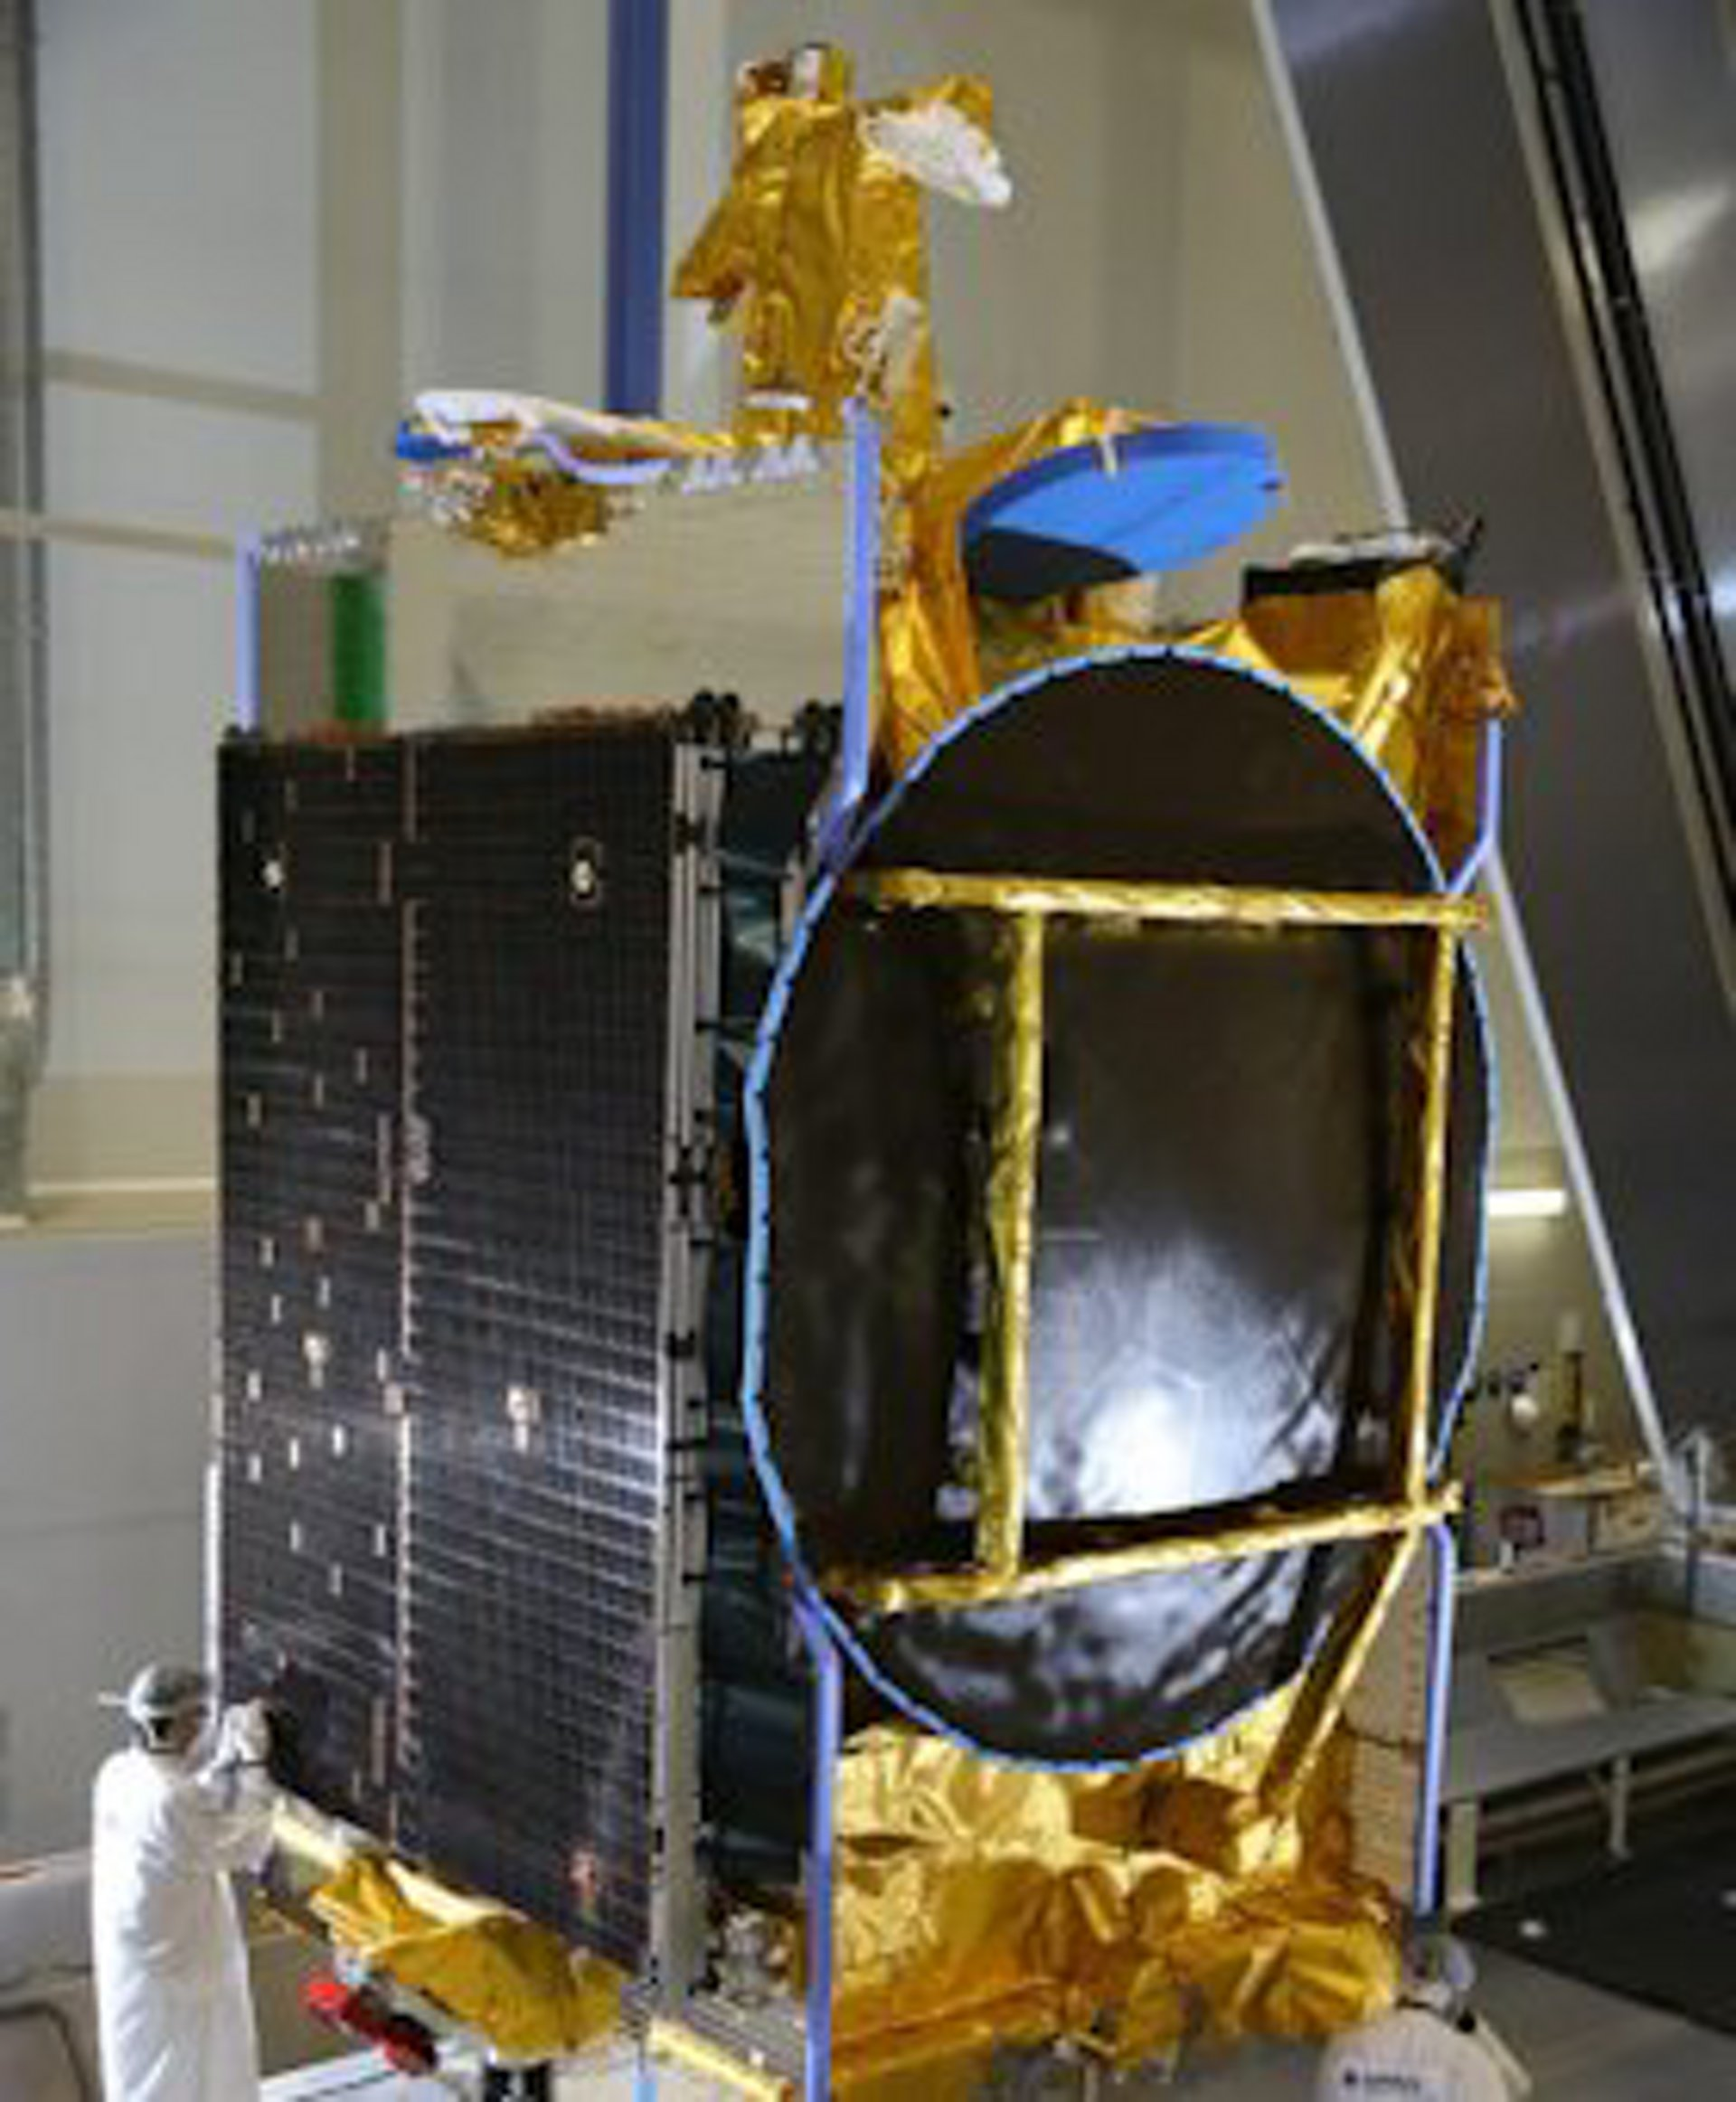 SES-10 telecommunications satellite built by Airbus